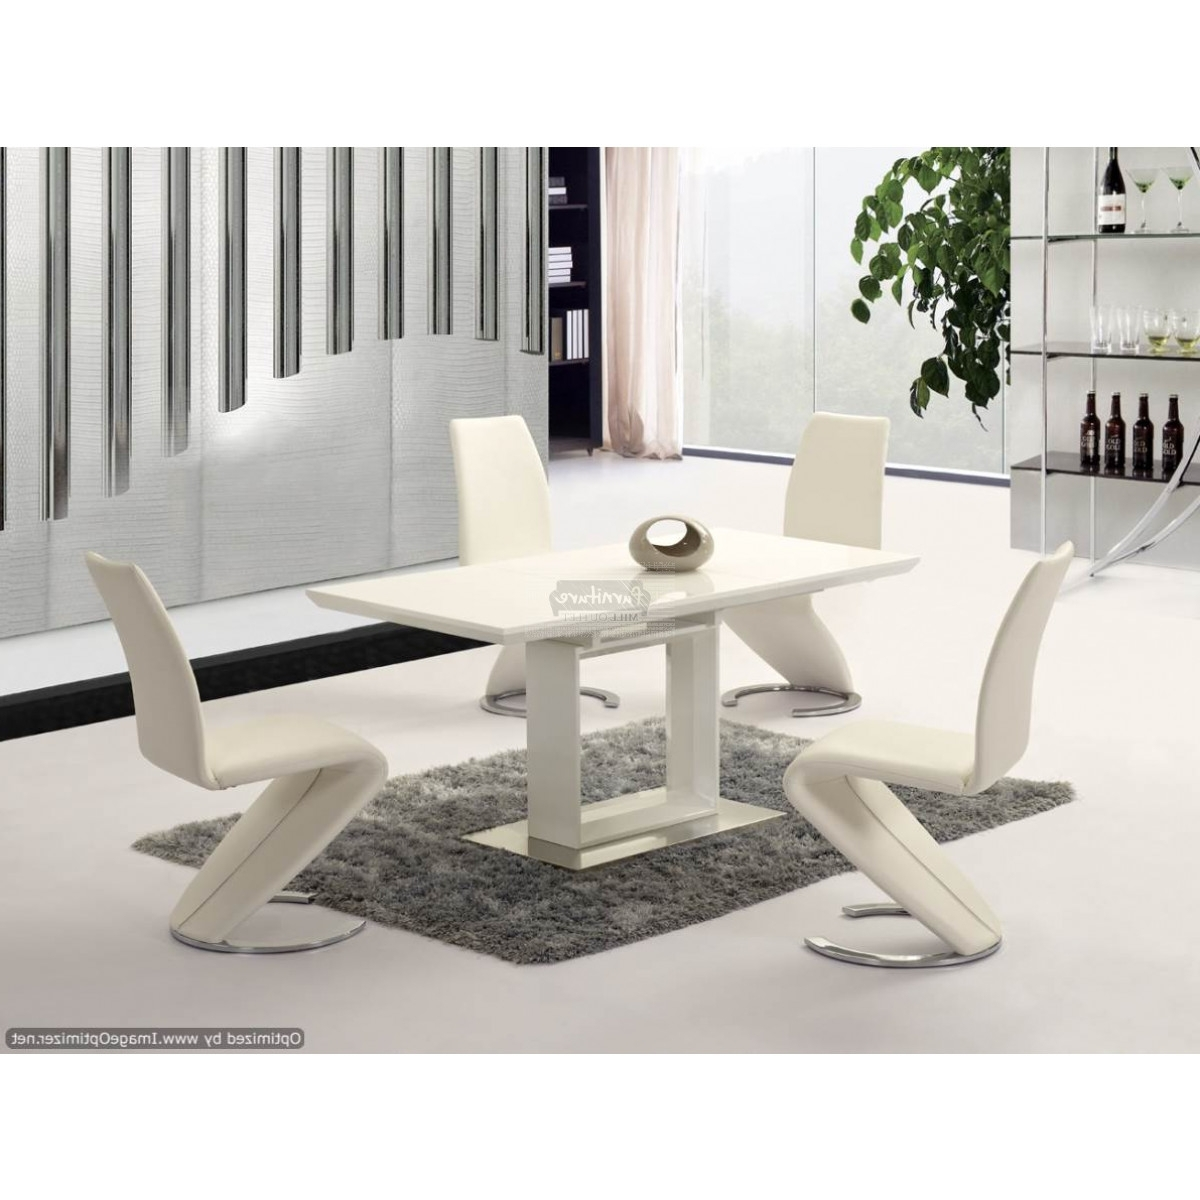 High Gloss Round Dining Tables with Widely used Space White High Gloss Extending Dining Table - 120Cm To 160Cm